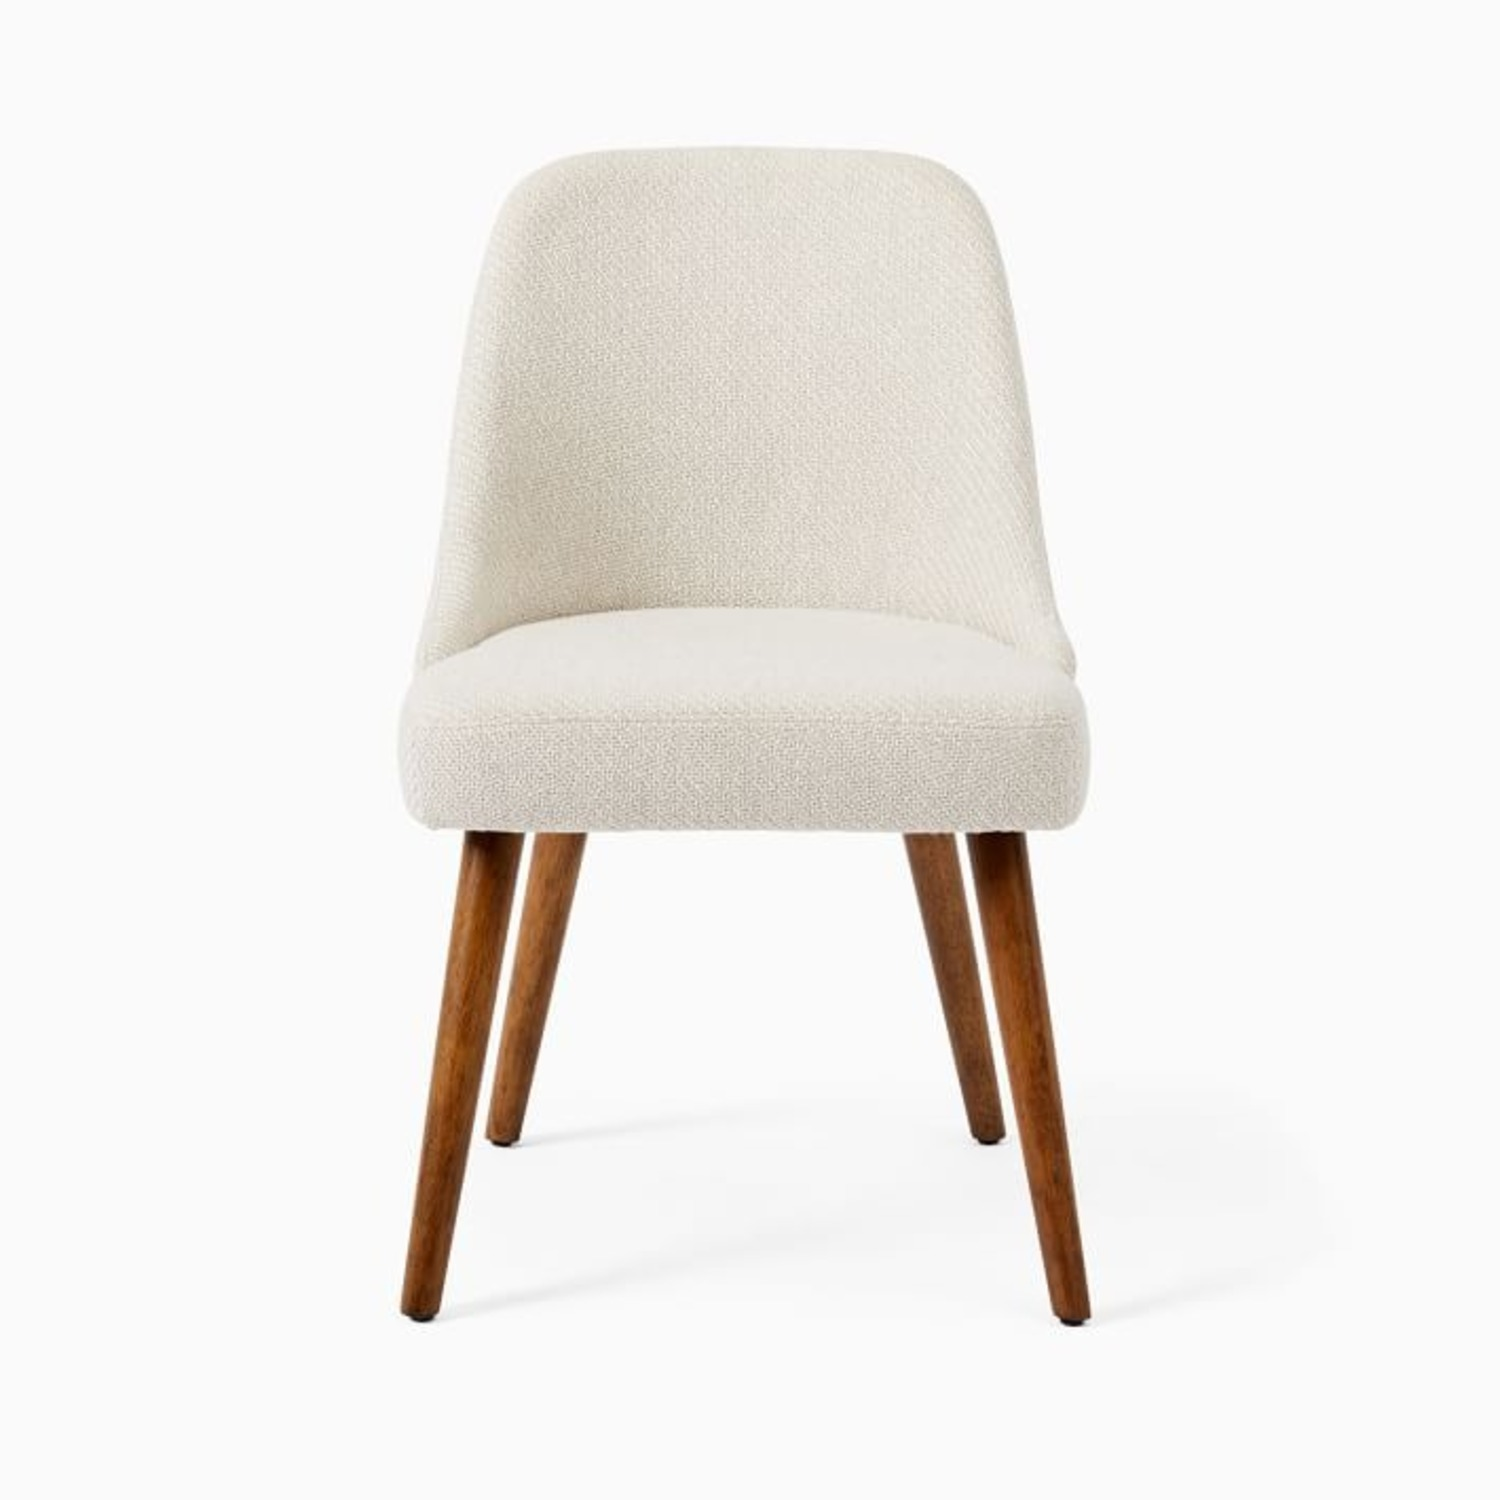 West Elm Mid Century Upholstered Dining Chair - image-2